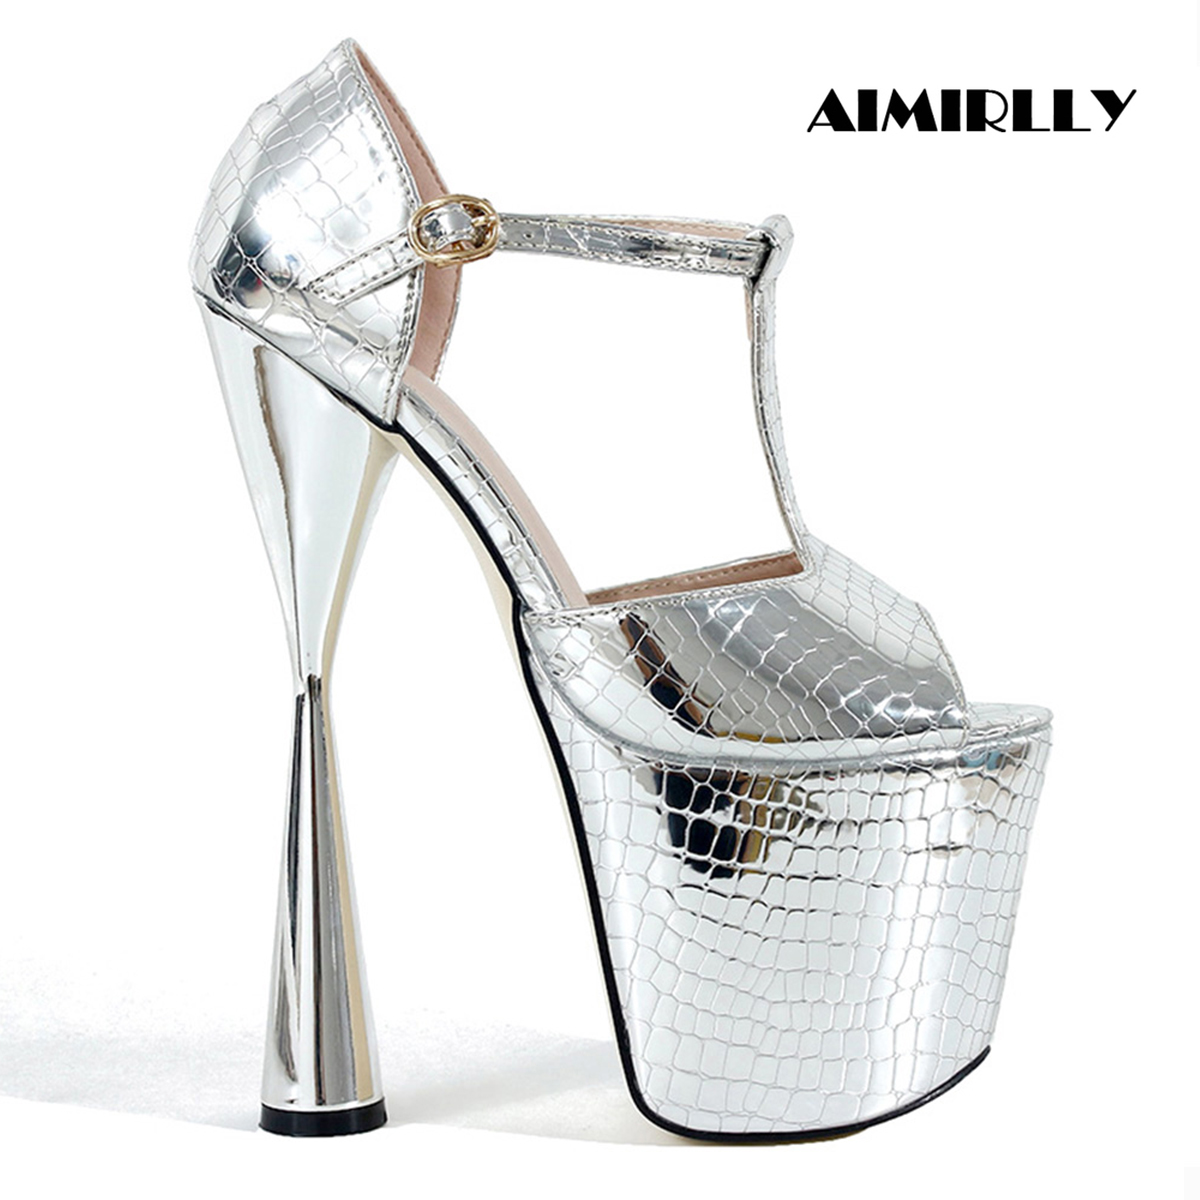 Aimirlly Women Shoes Peep Toe Sky High Heels Platform Sandals Cover Heel Crocodile Pattern T-strap Silver Gold 20cmAimirlly Women Shoes Peep Toe Sky High Heels Platform Sandals Cover Heel Crocodile Pattern T-strap Silver Gold 20cm